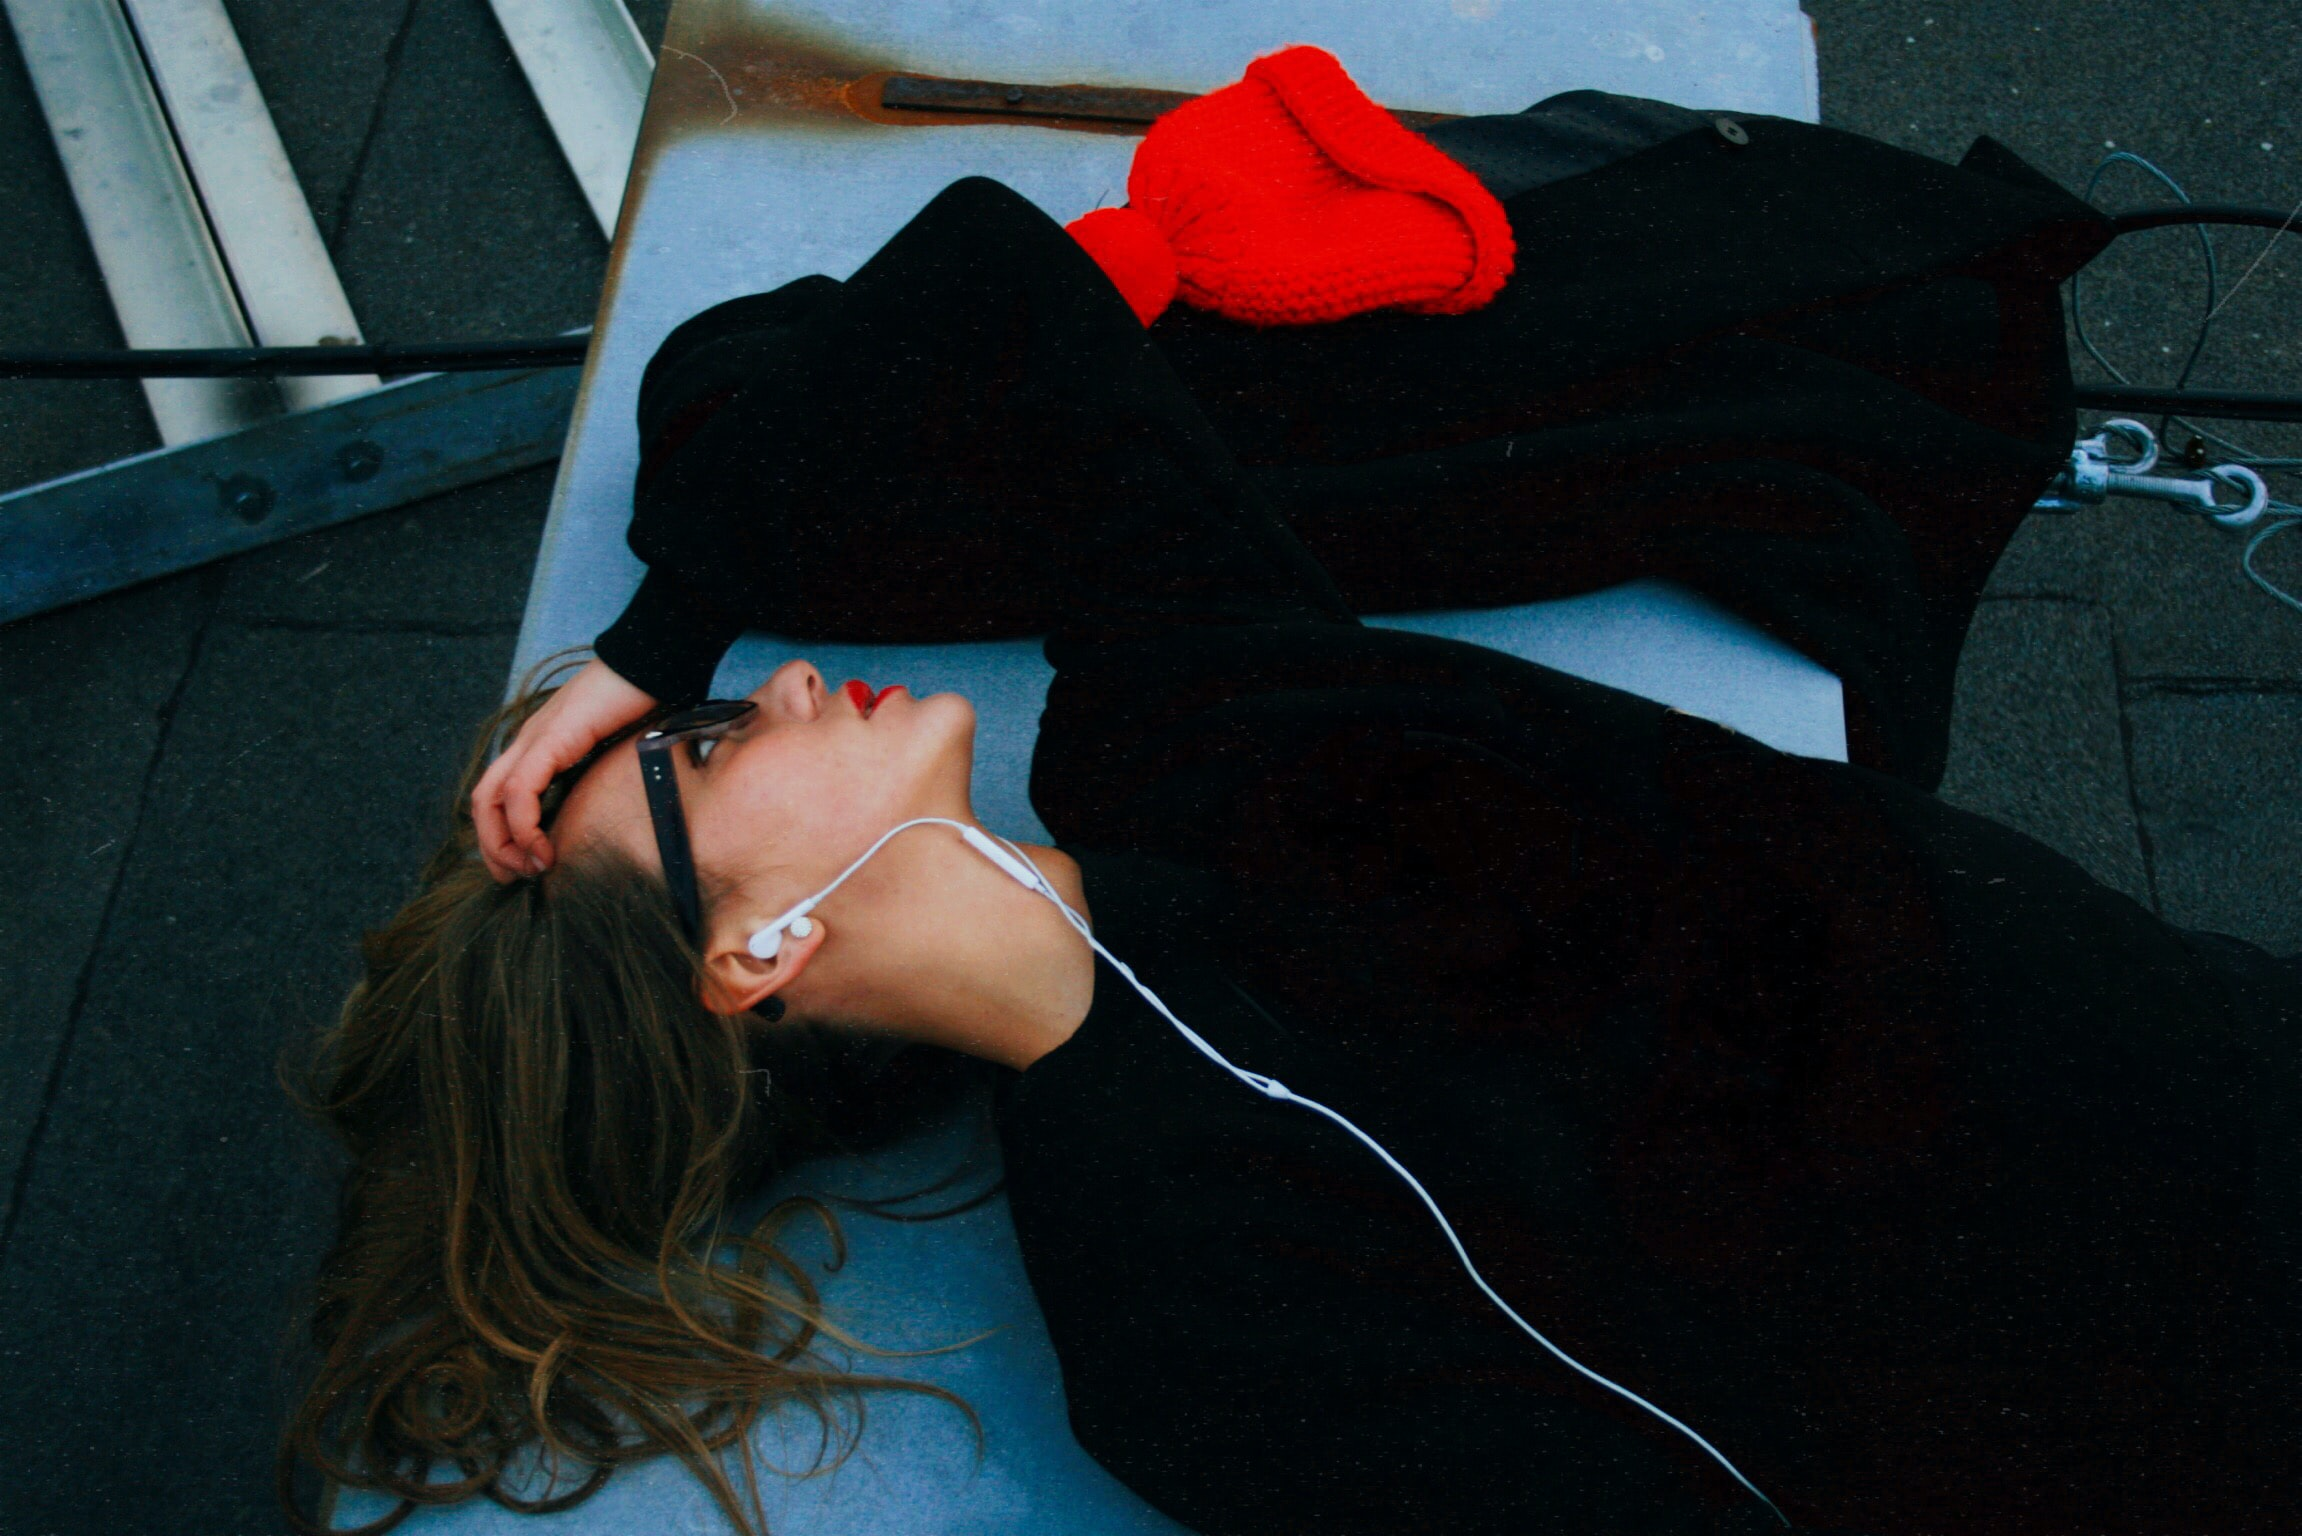 woman in black shirt lying on blue surface